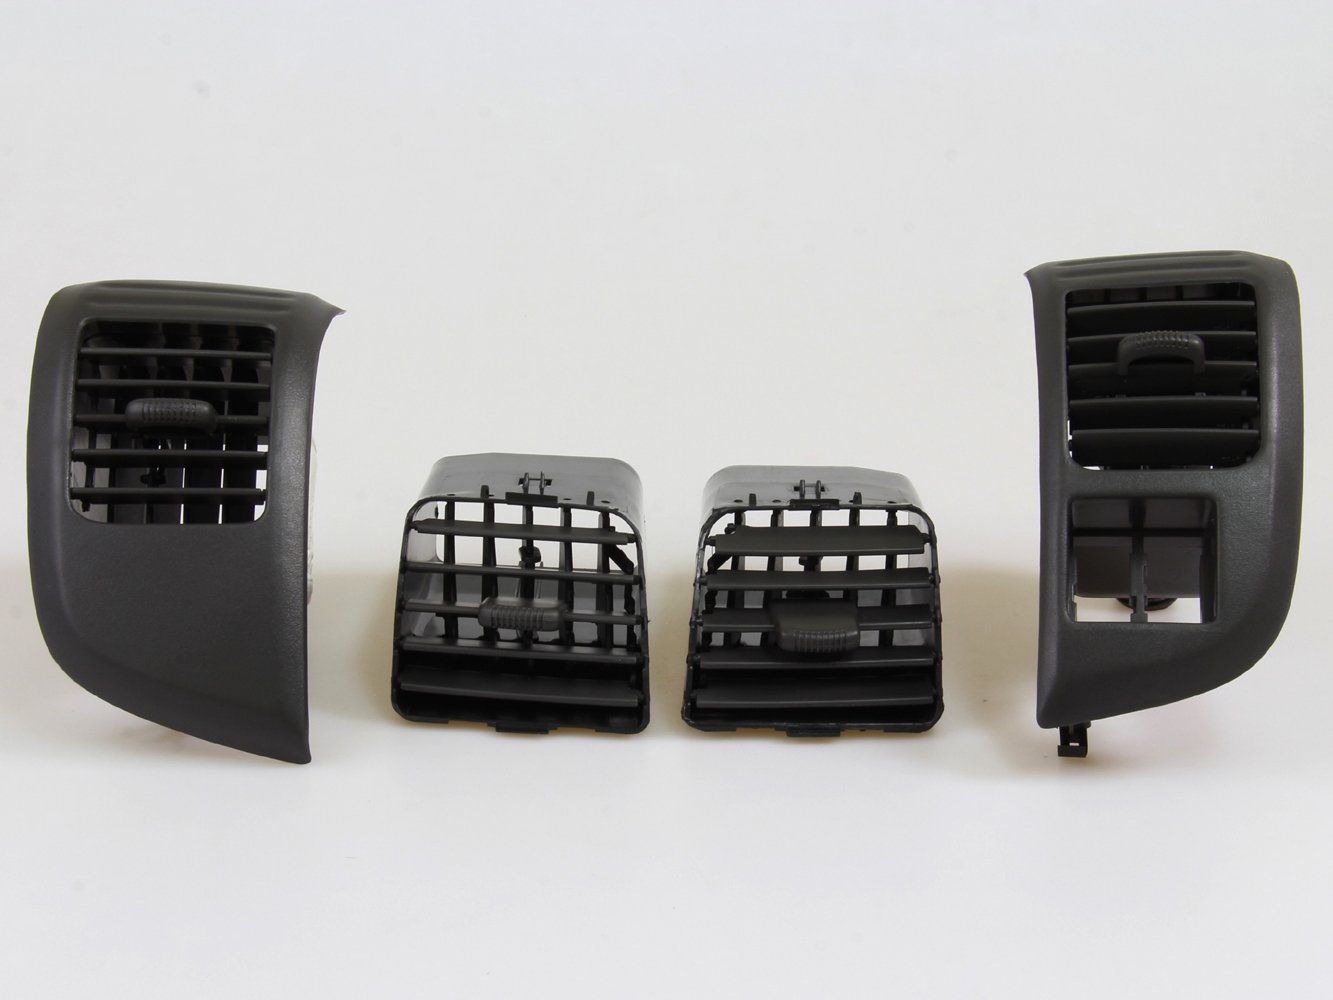 ISUZU D-MAX PICKUP TRUCK GMC CANYON RODEO 03-08 RA AIR VENT VENTILATOR SET 4 Pcs Pai Square ISUZU D-MAX PICKUP GMC CANYON RODEO